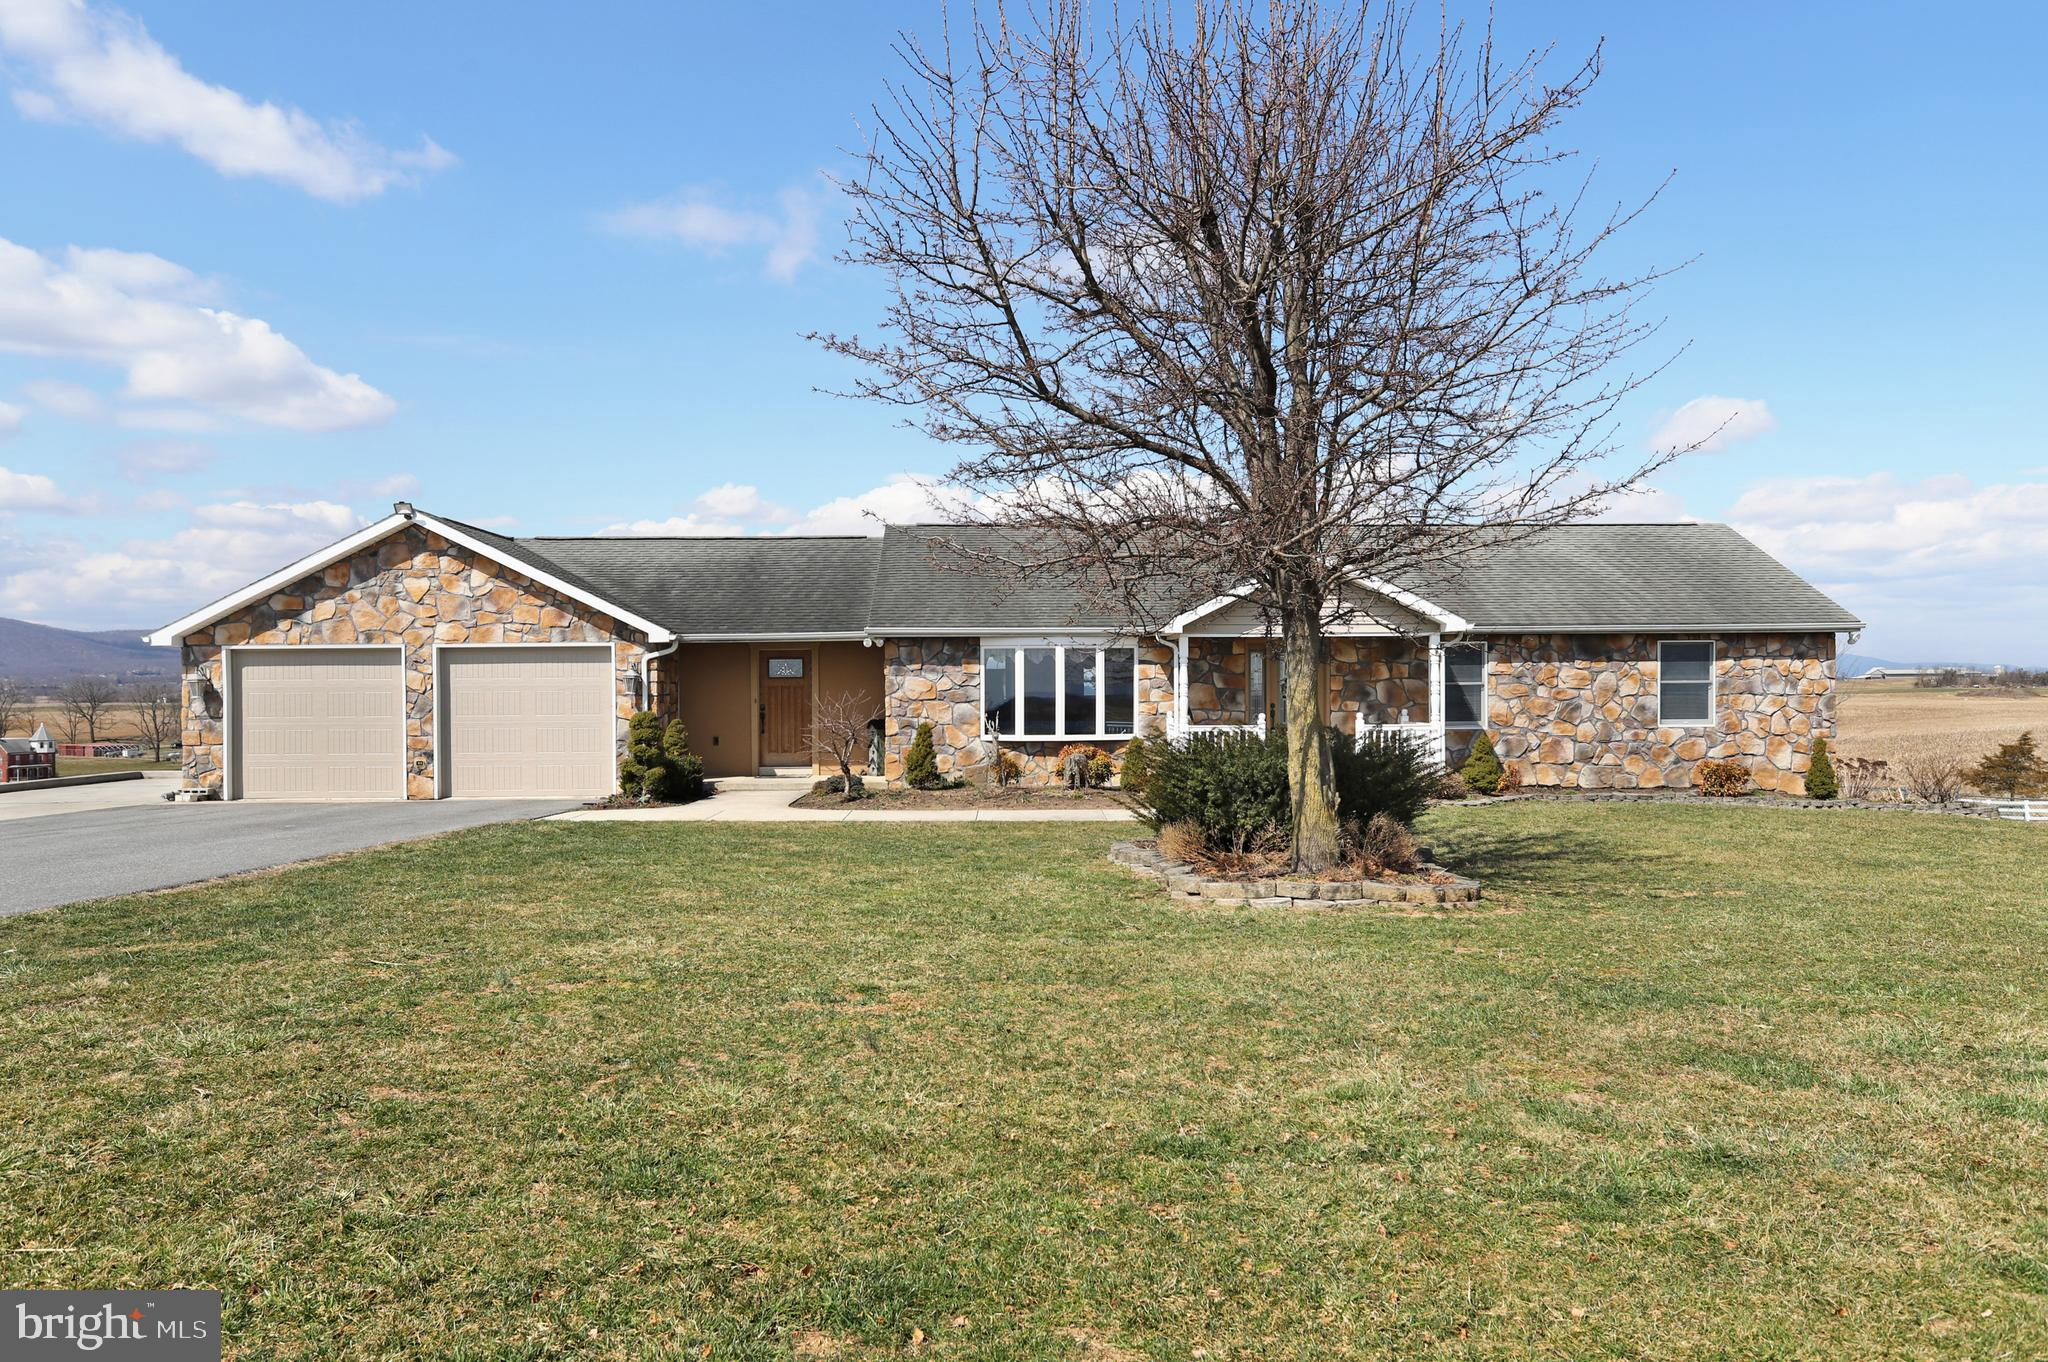 14528 FAIRVIEW HILL LANE, CLEAR SPRING, MD 21722